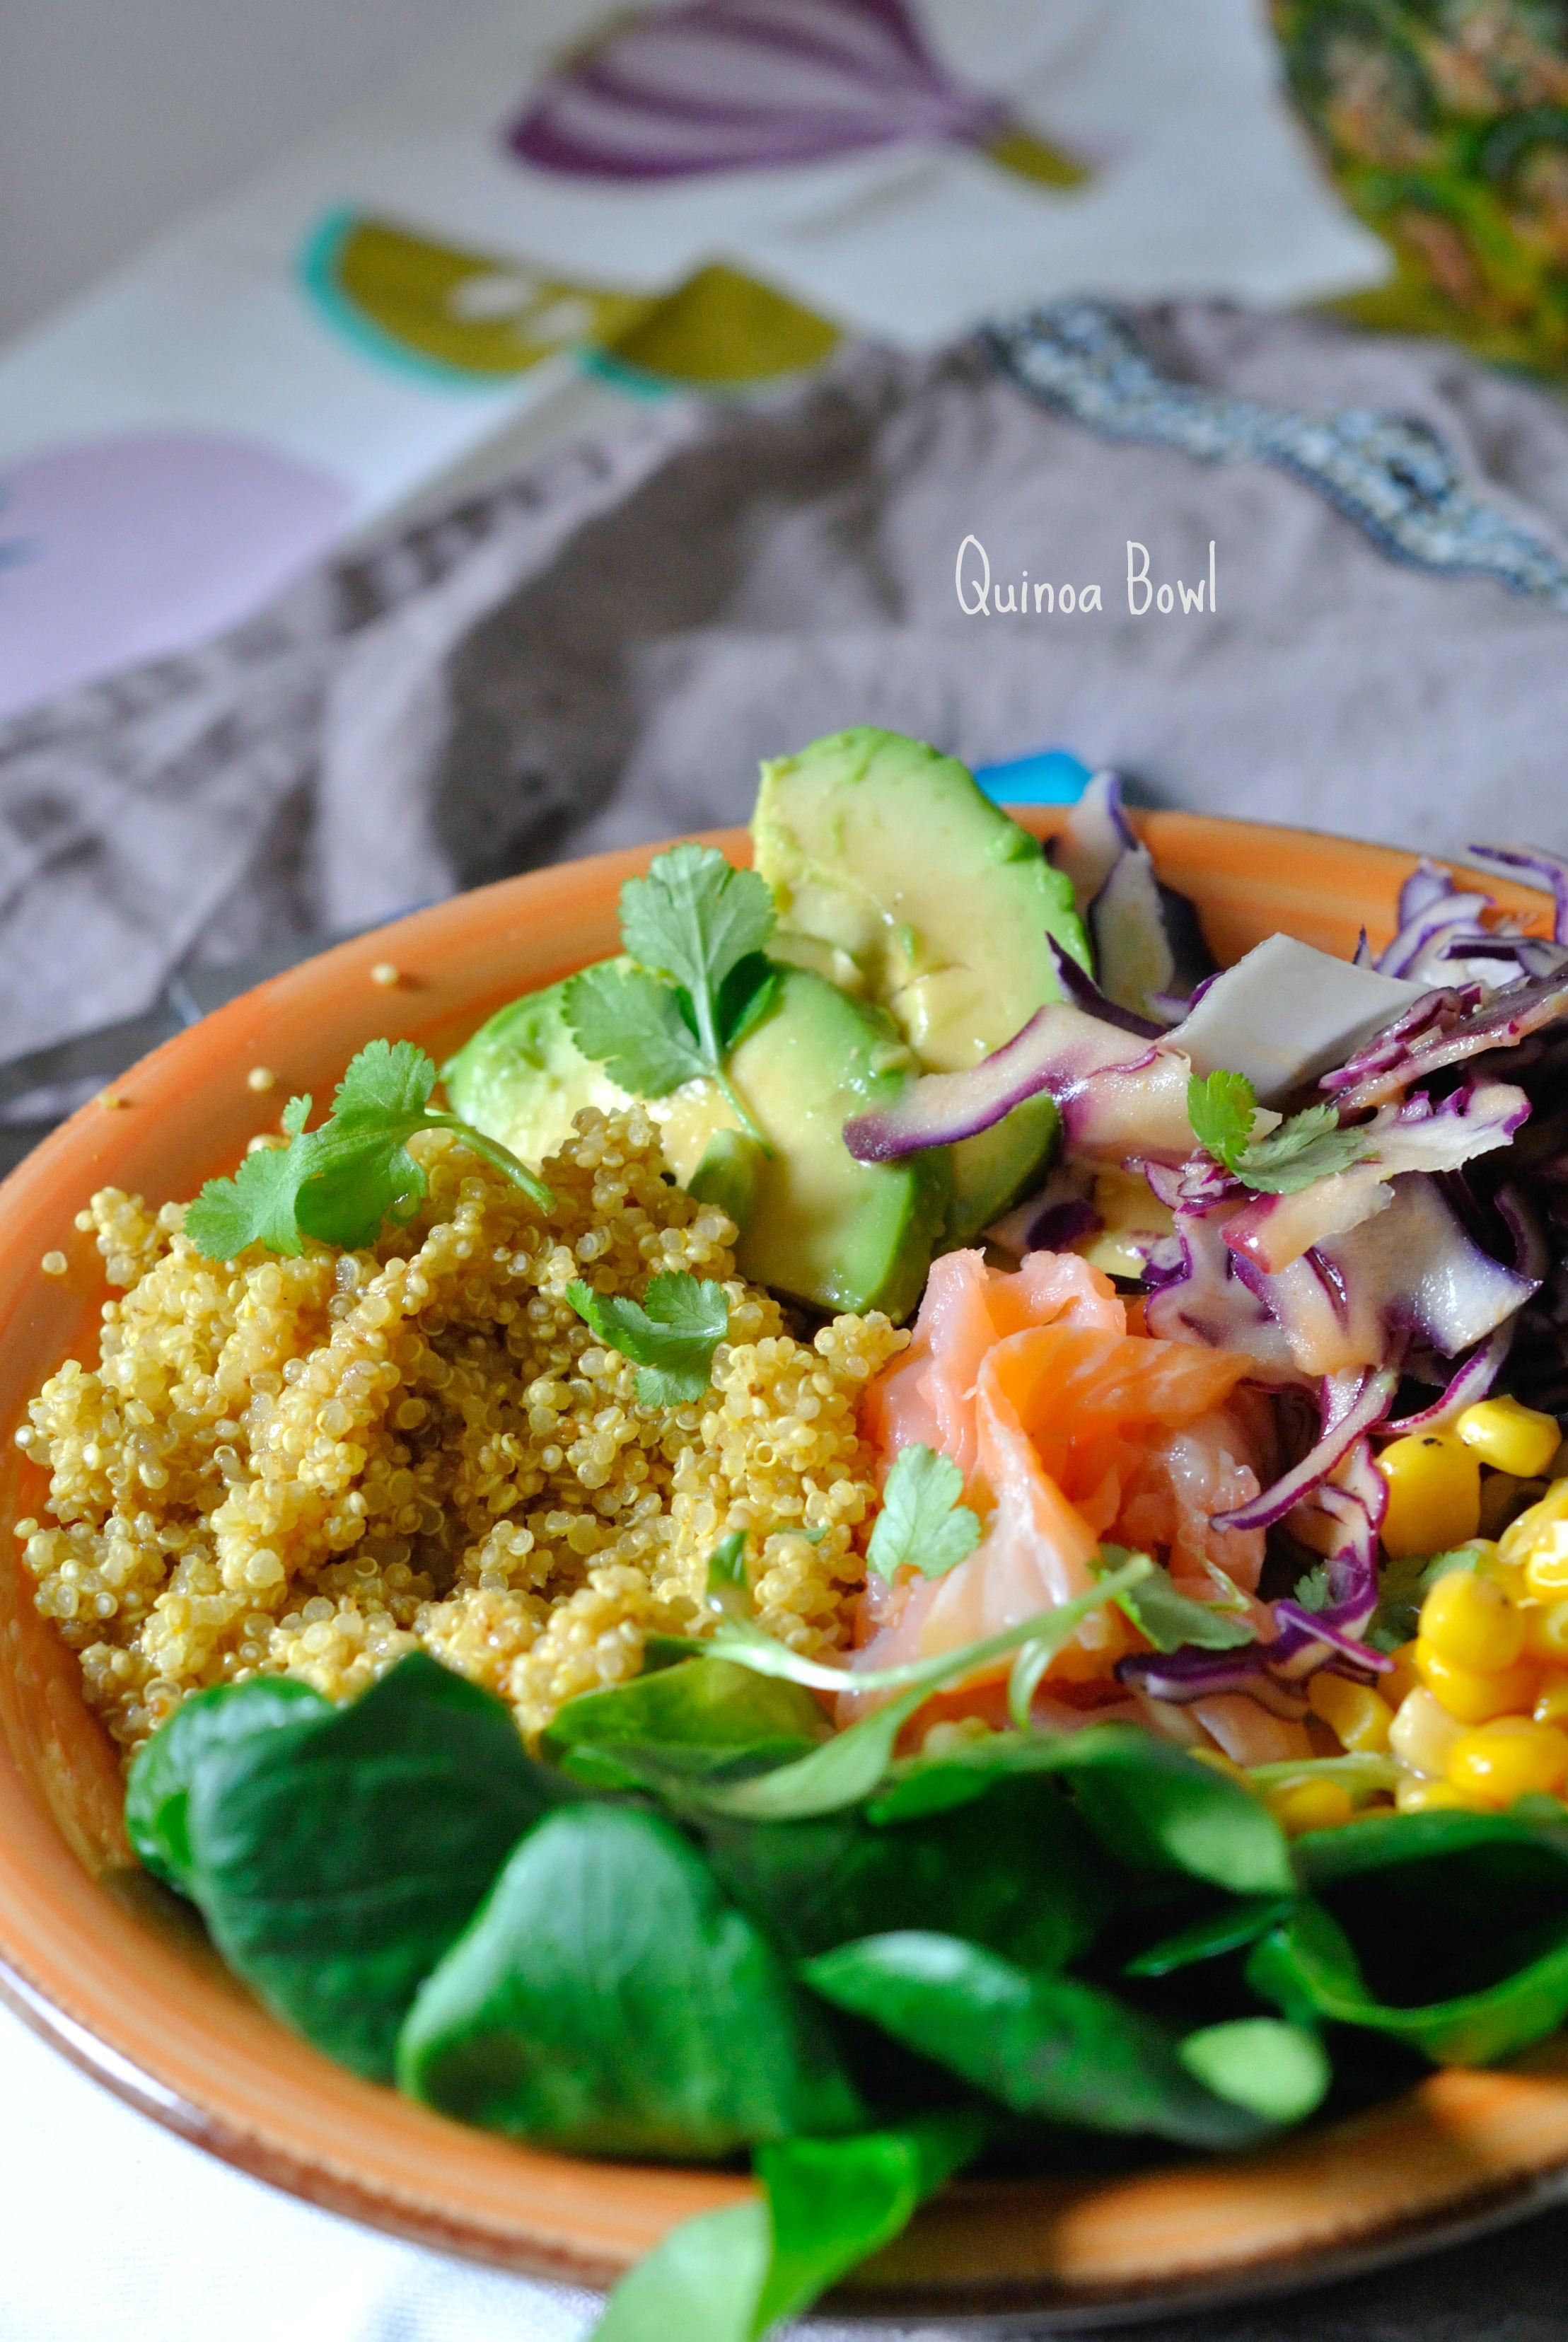 Quinoa Bowl super simple